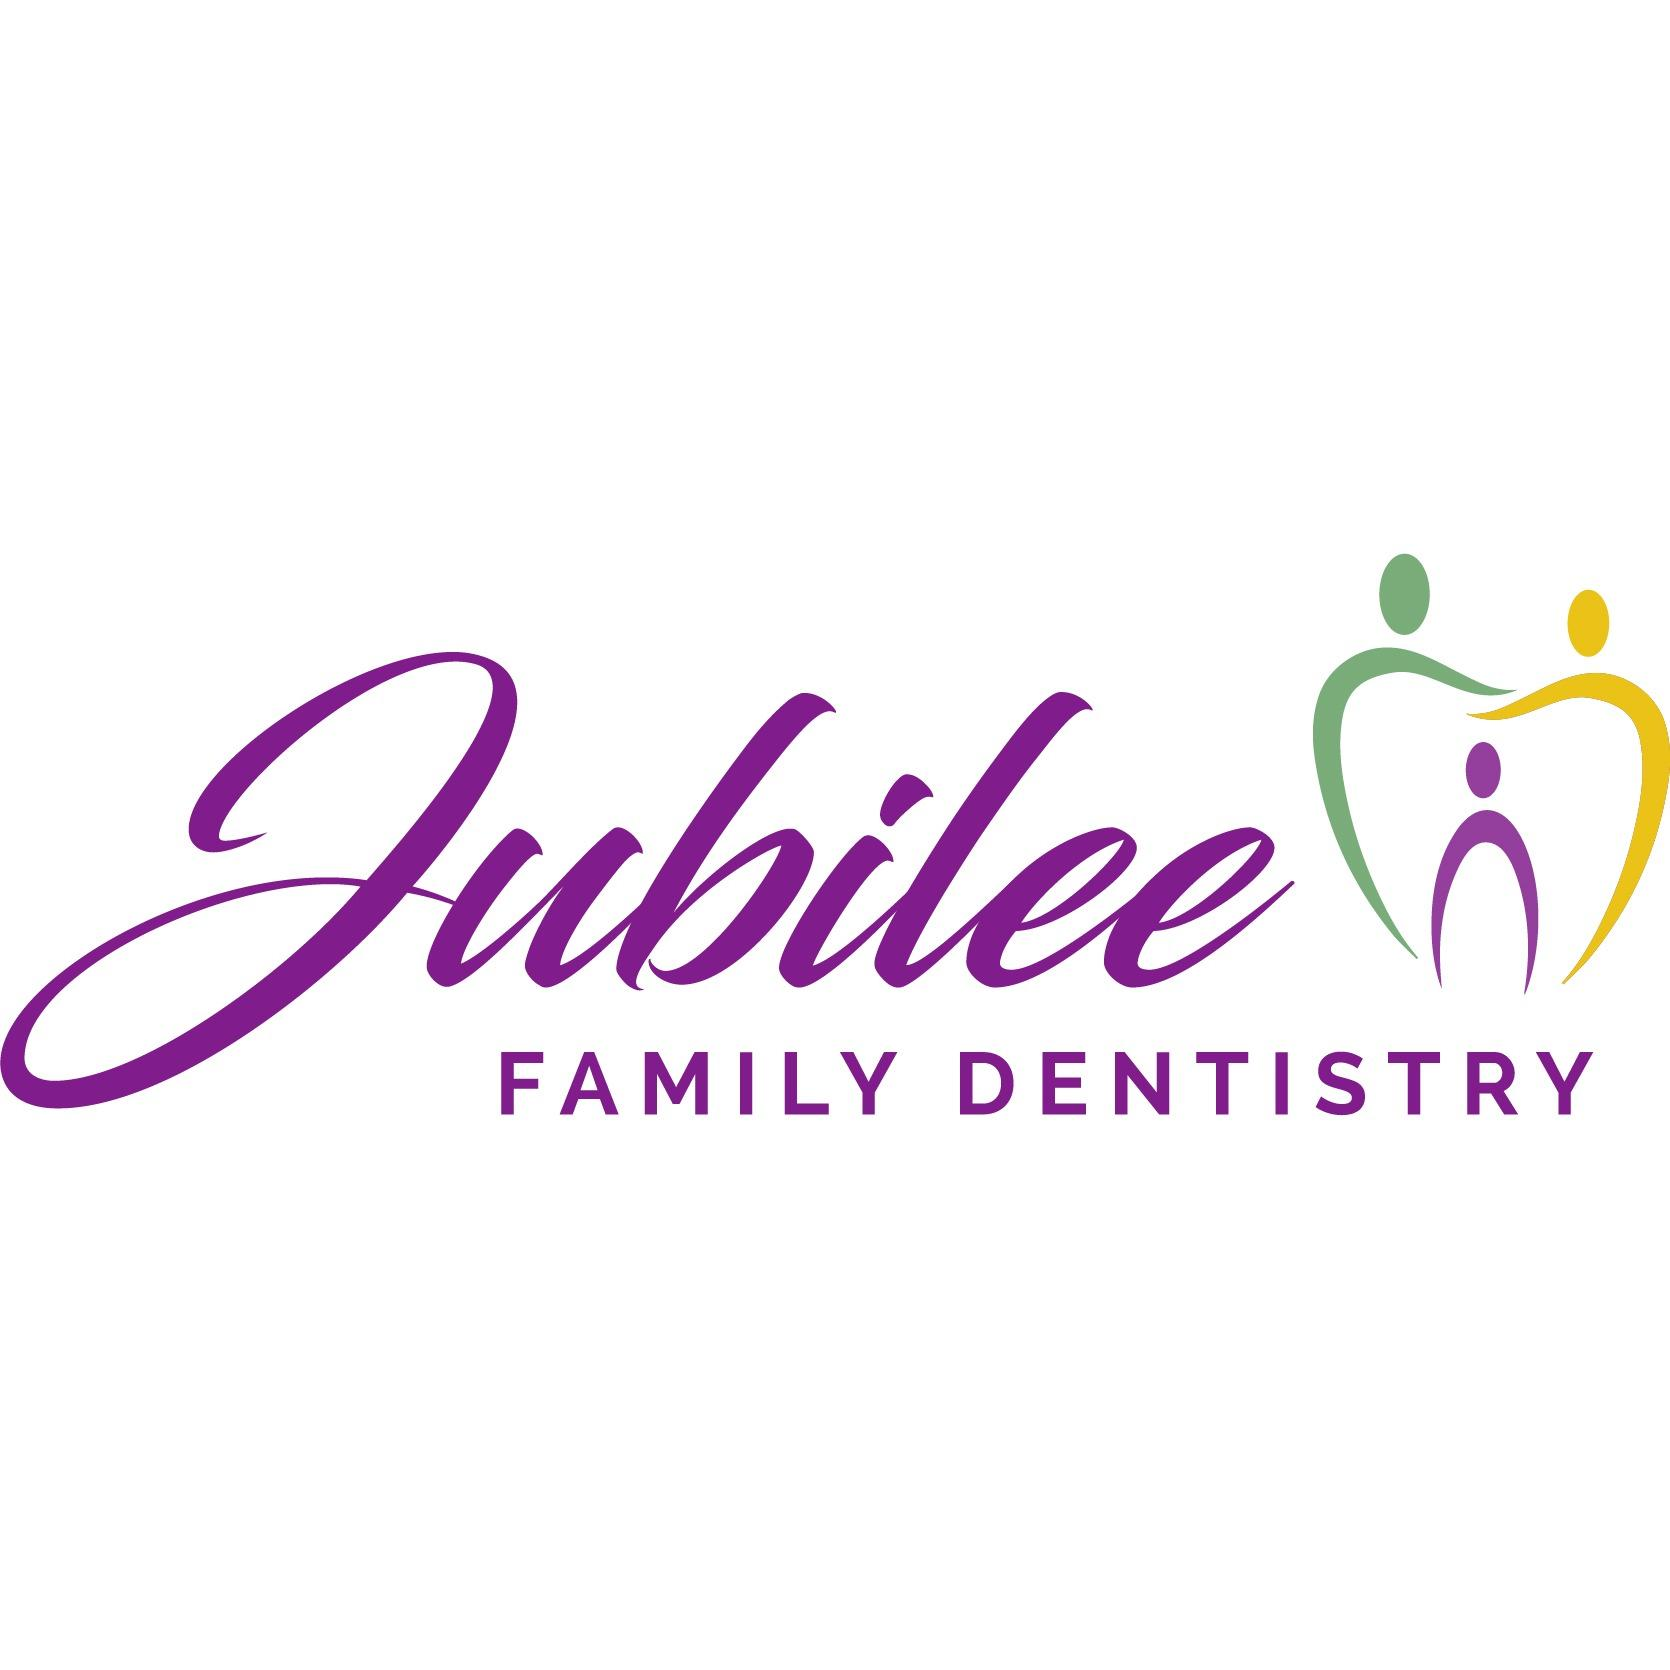 Jubilee Family Dentistry LLC